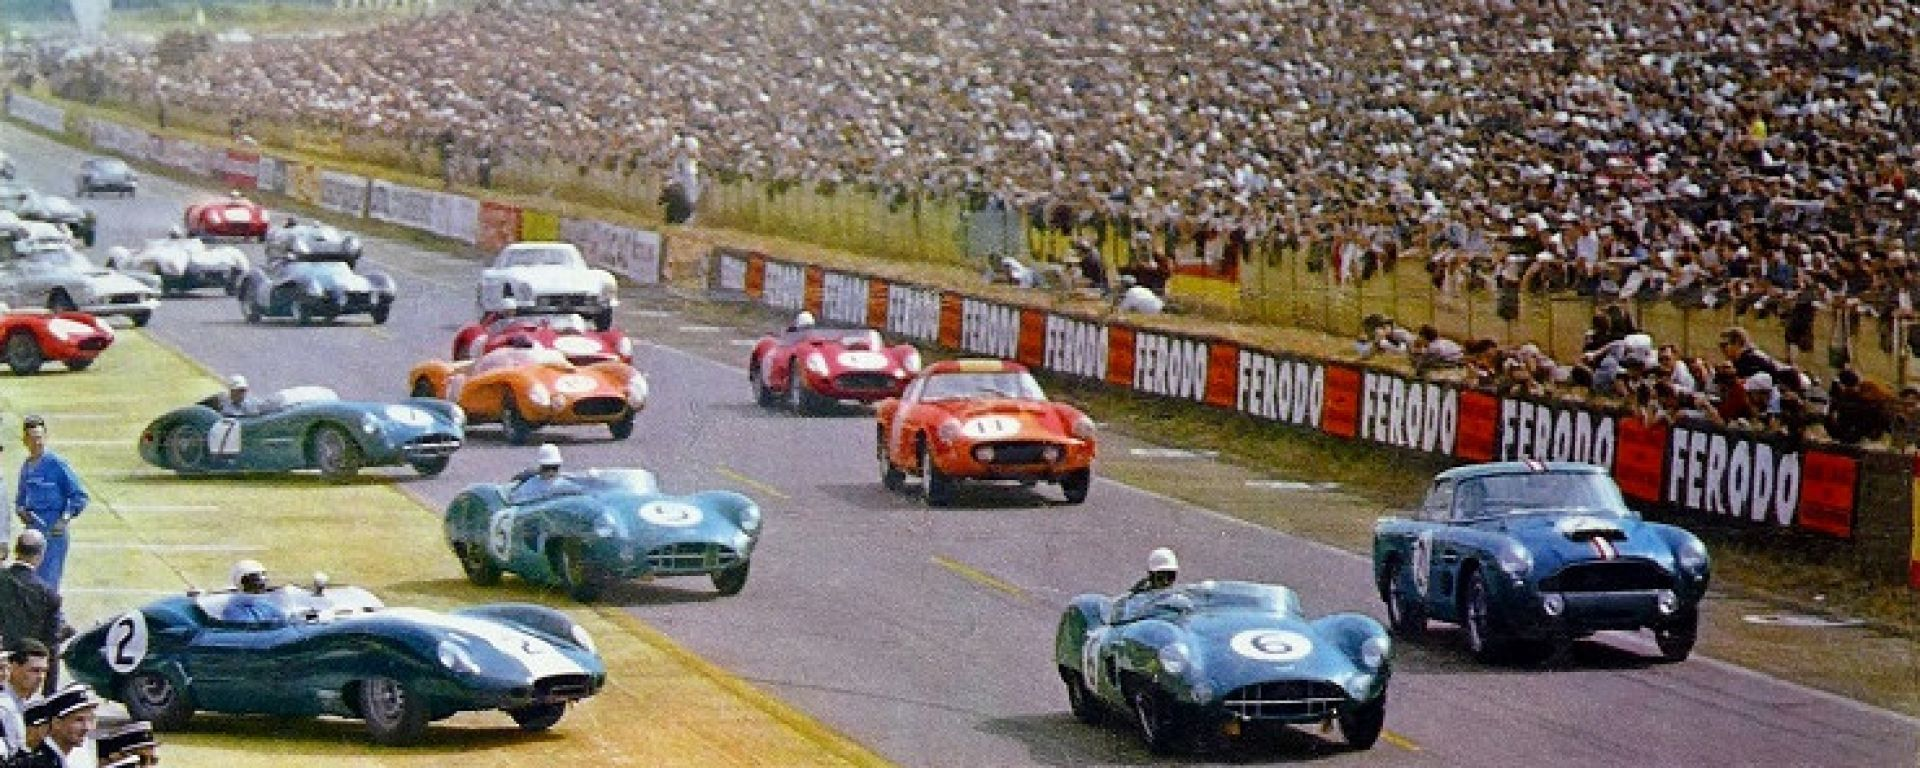 24 Ore di Le Mans del 1960 (© 2020 Courtesy of RM Sotheby's)